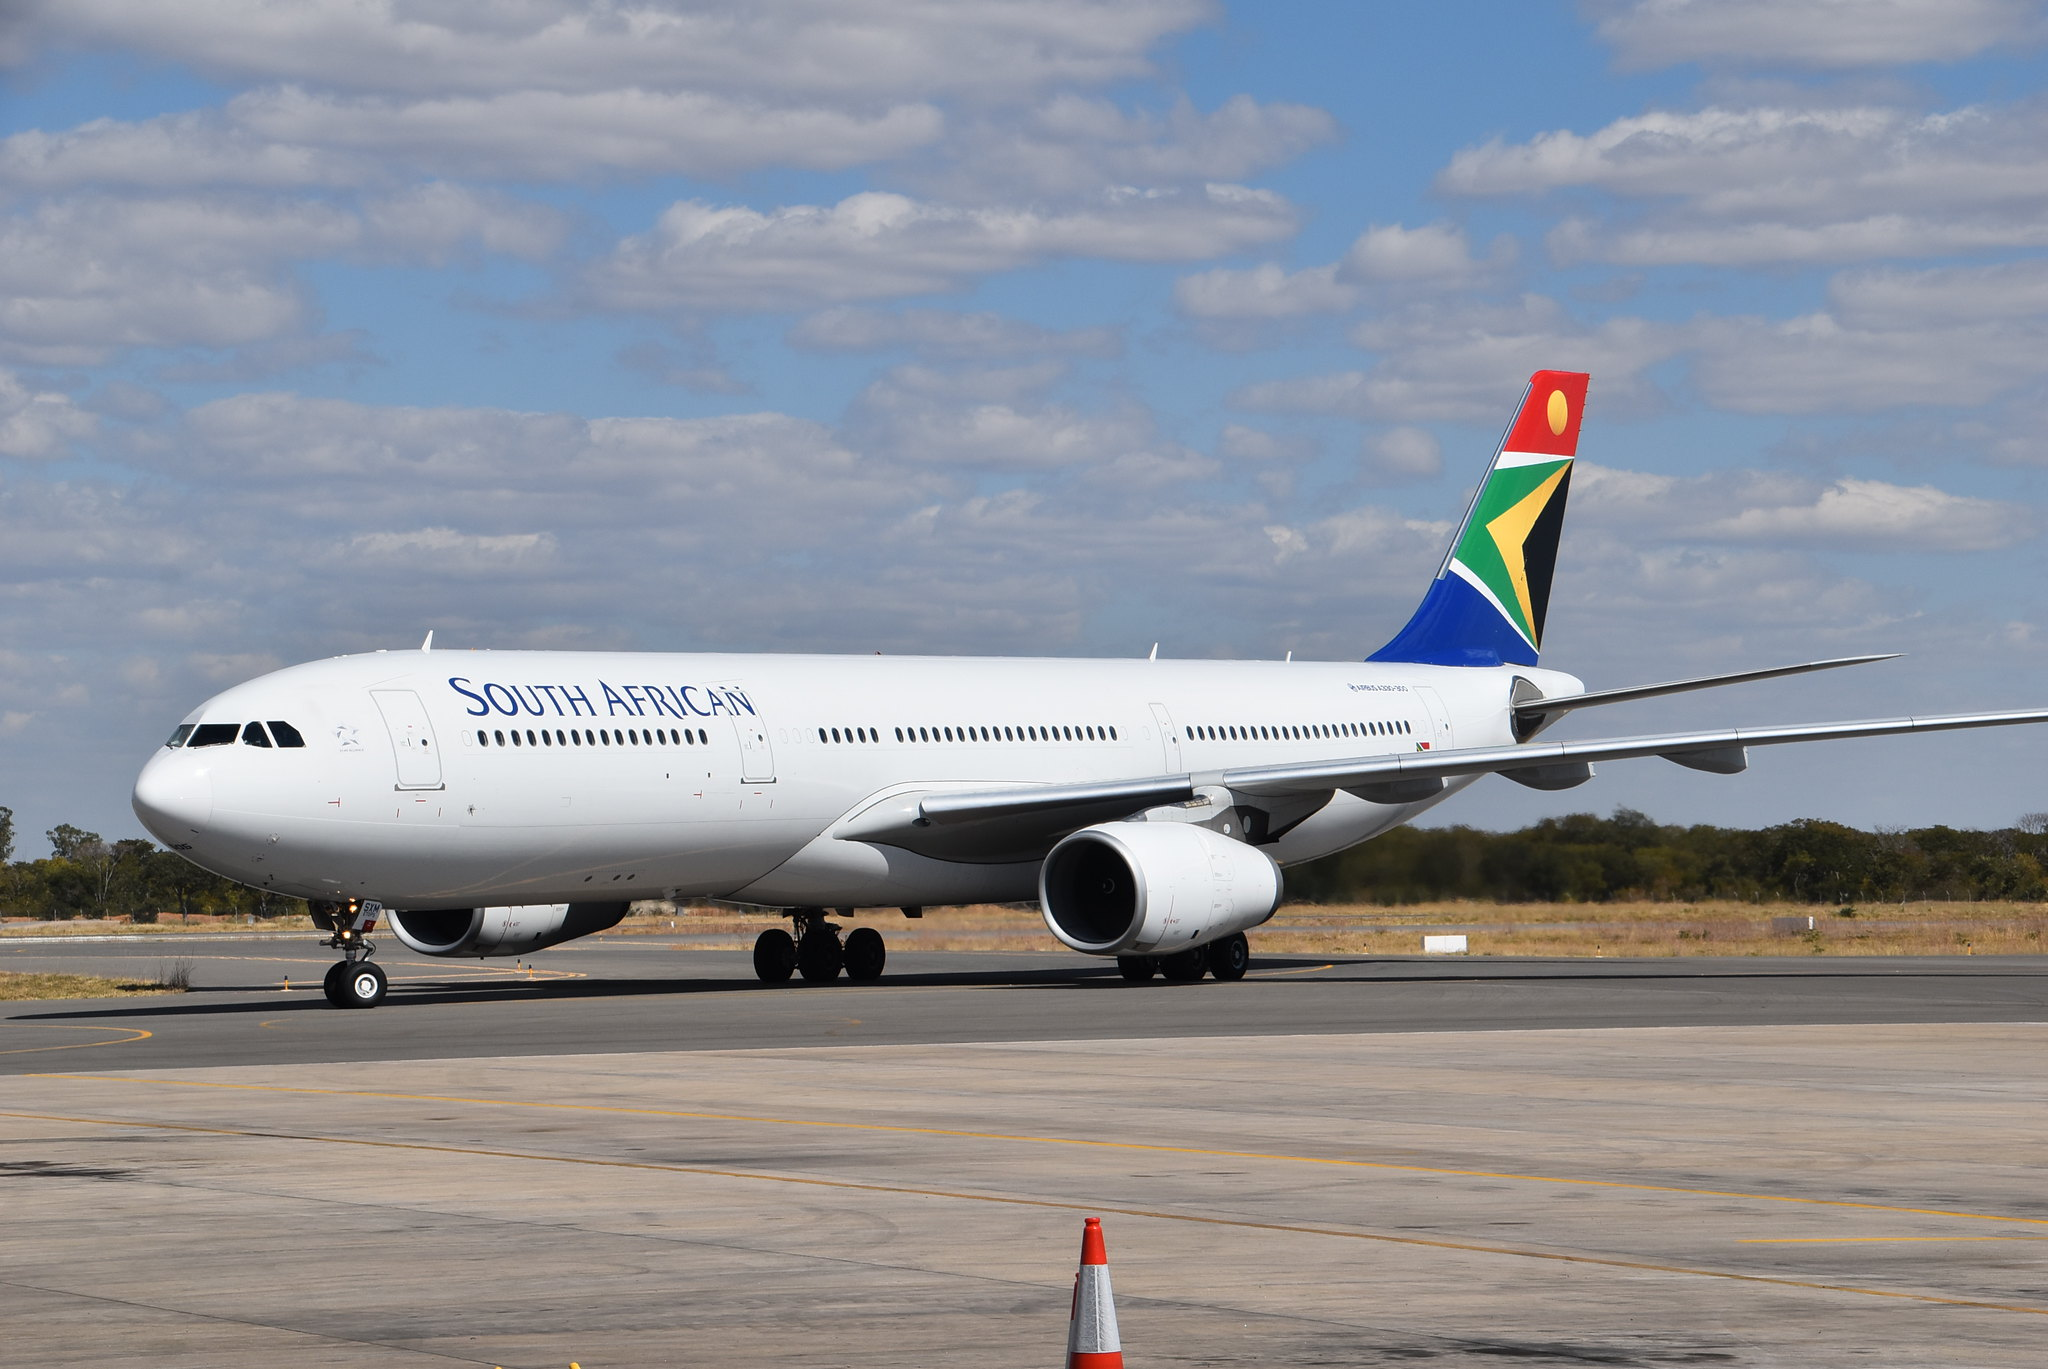 South Africa: SAA Signs Codeshare Agreement With Brazilian Airline